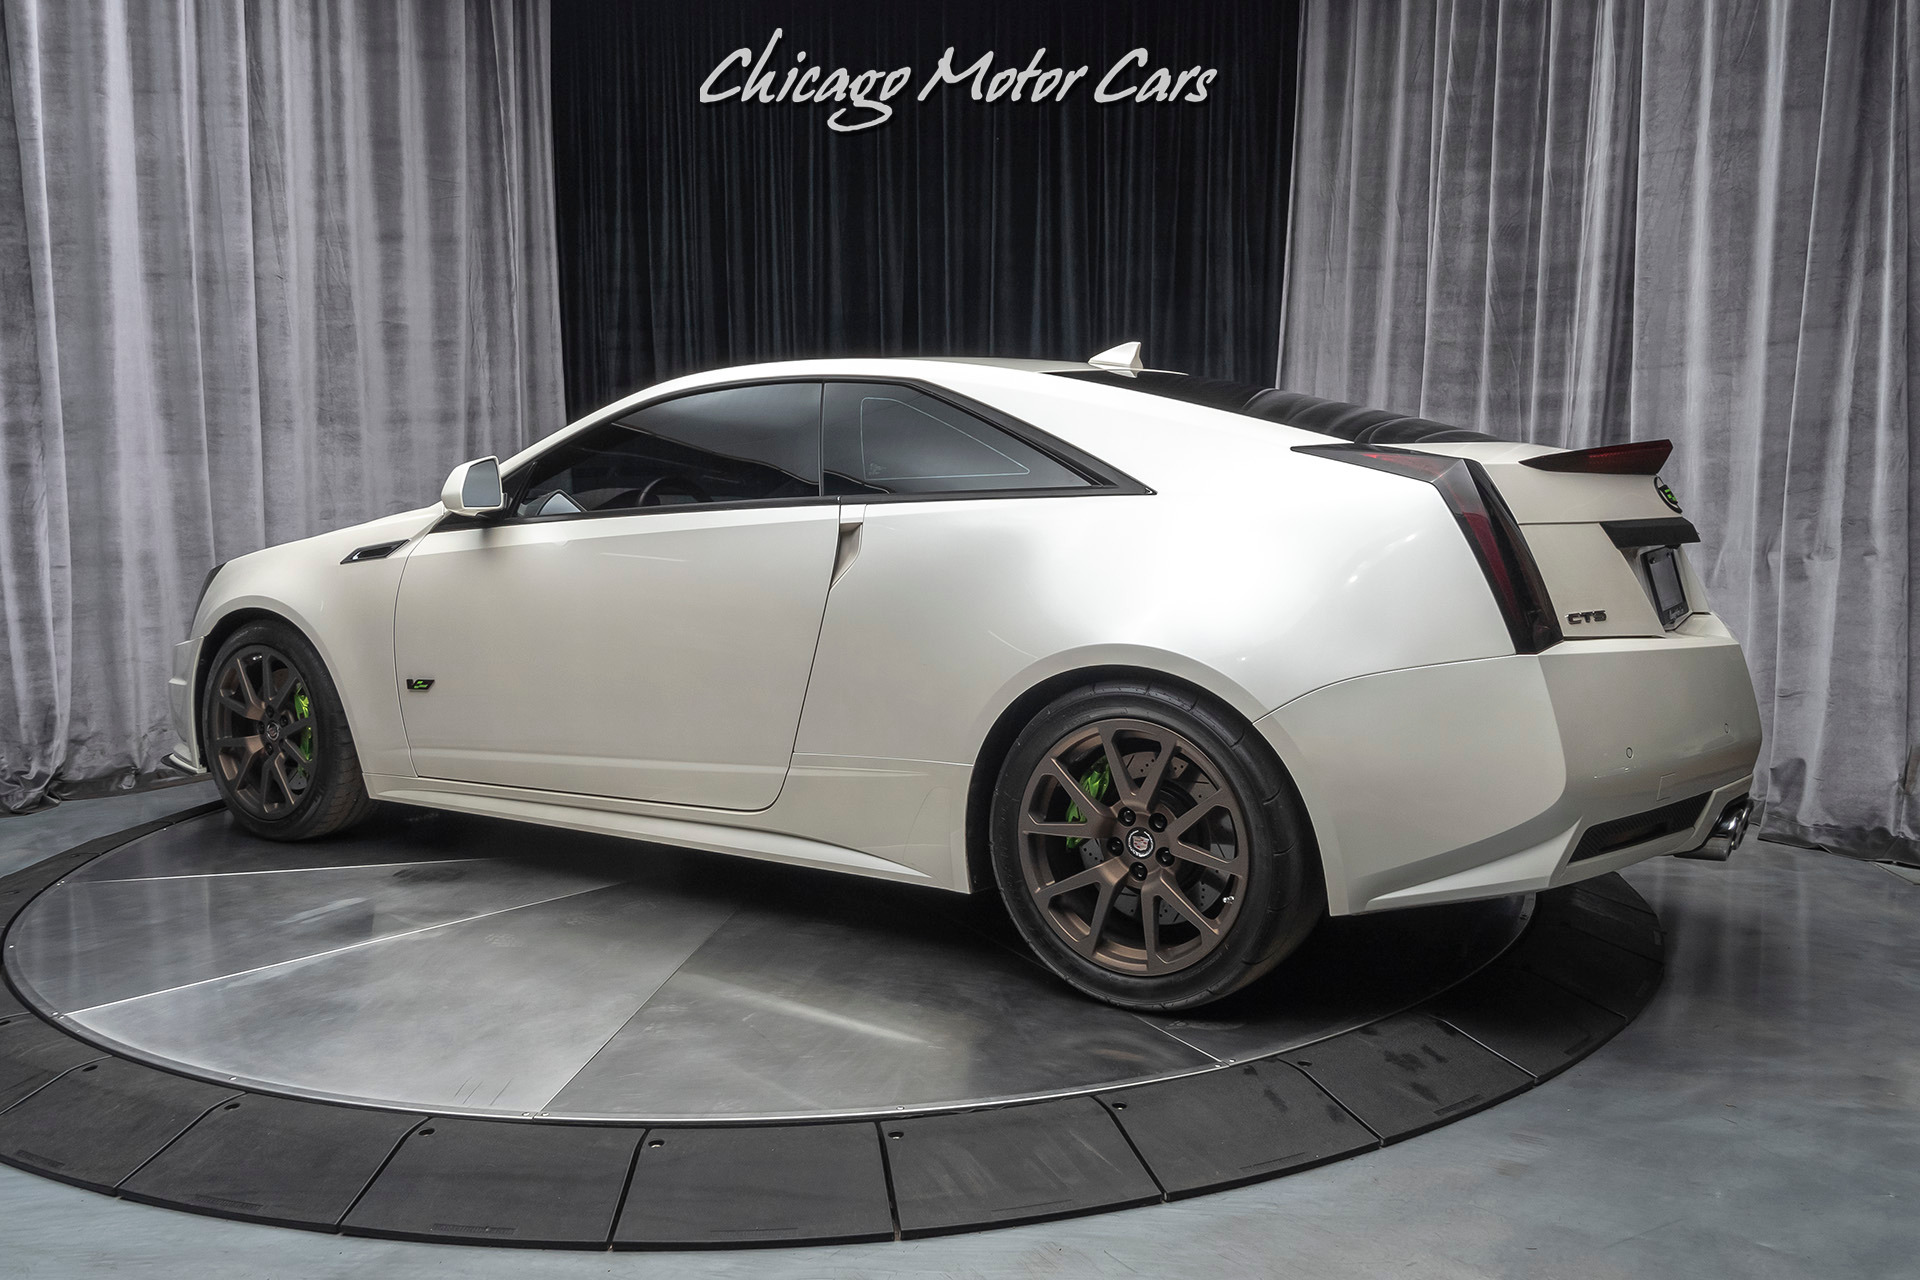 Used 2011 Cadillac Cts V Coupe 800 Horsepower Recaro Seats 22k Miles For Sale Special Pricing Chicago Motor Cars Stock 17157